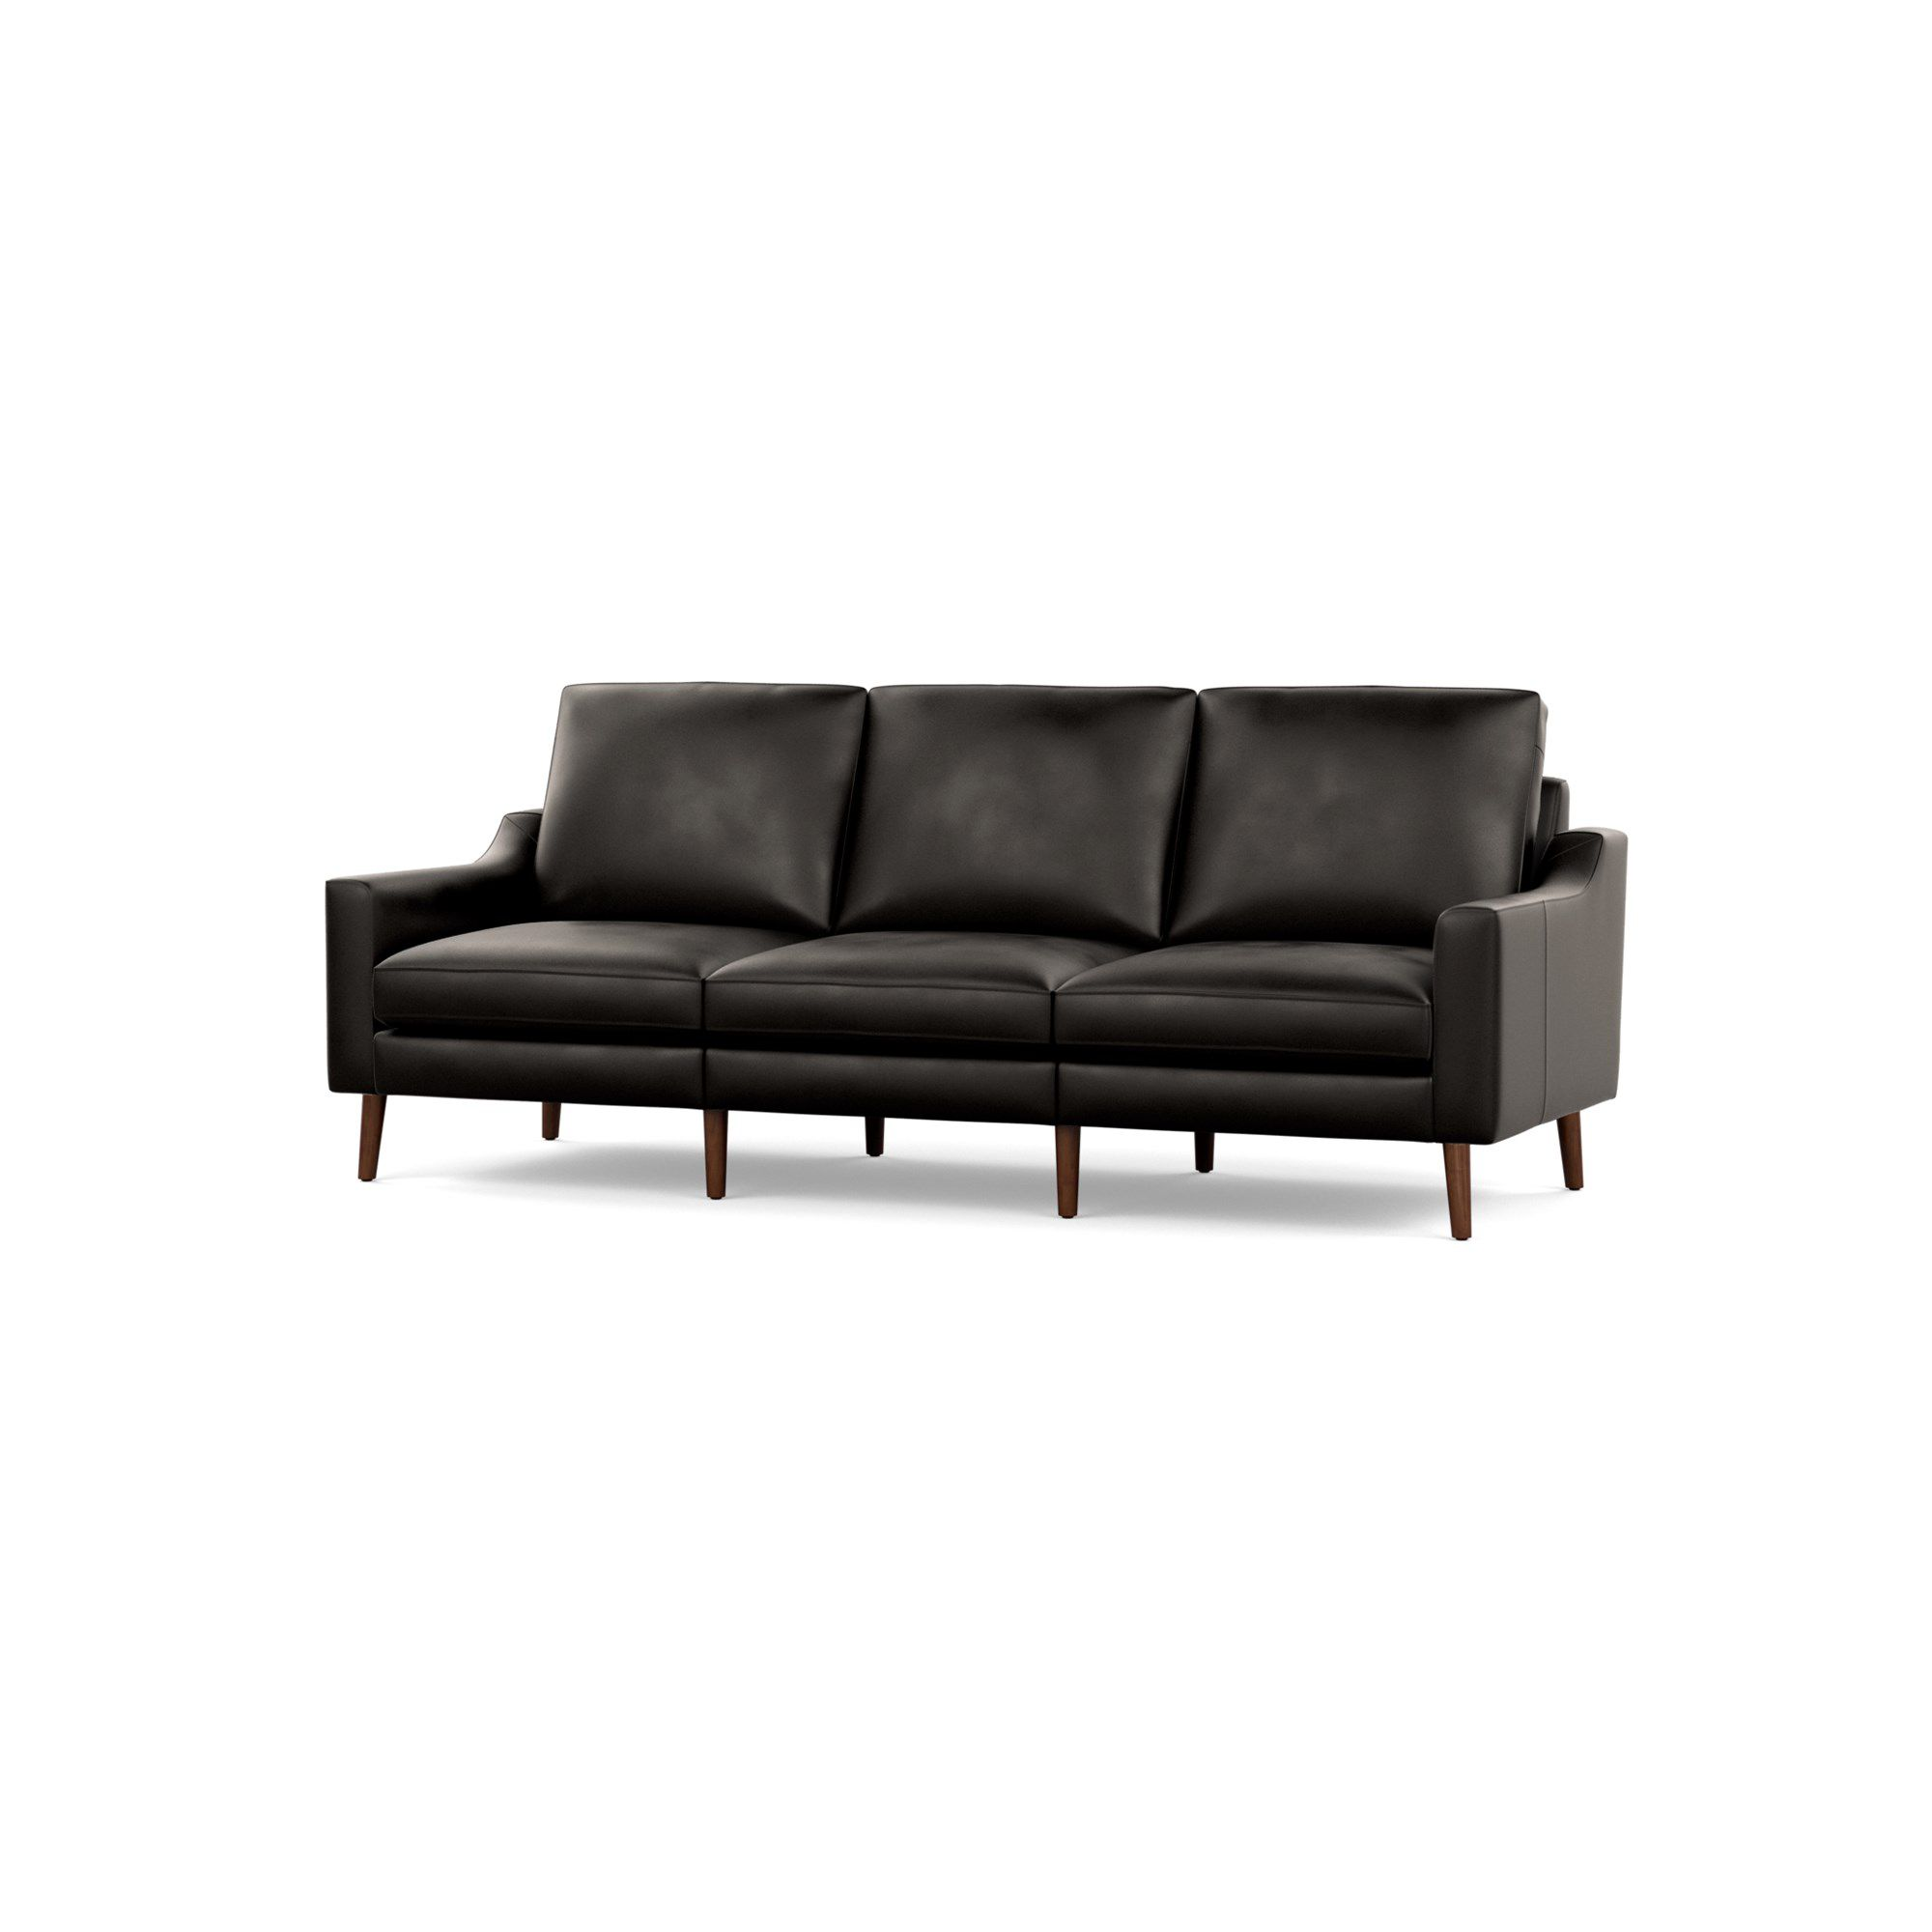 Superb The Affordable New Leather Sofa From Burrow Ibusinesslaw Wood Chair Design Ideas Ibusinesslaworg